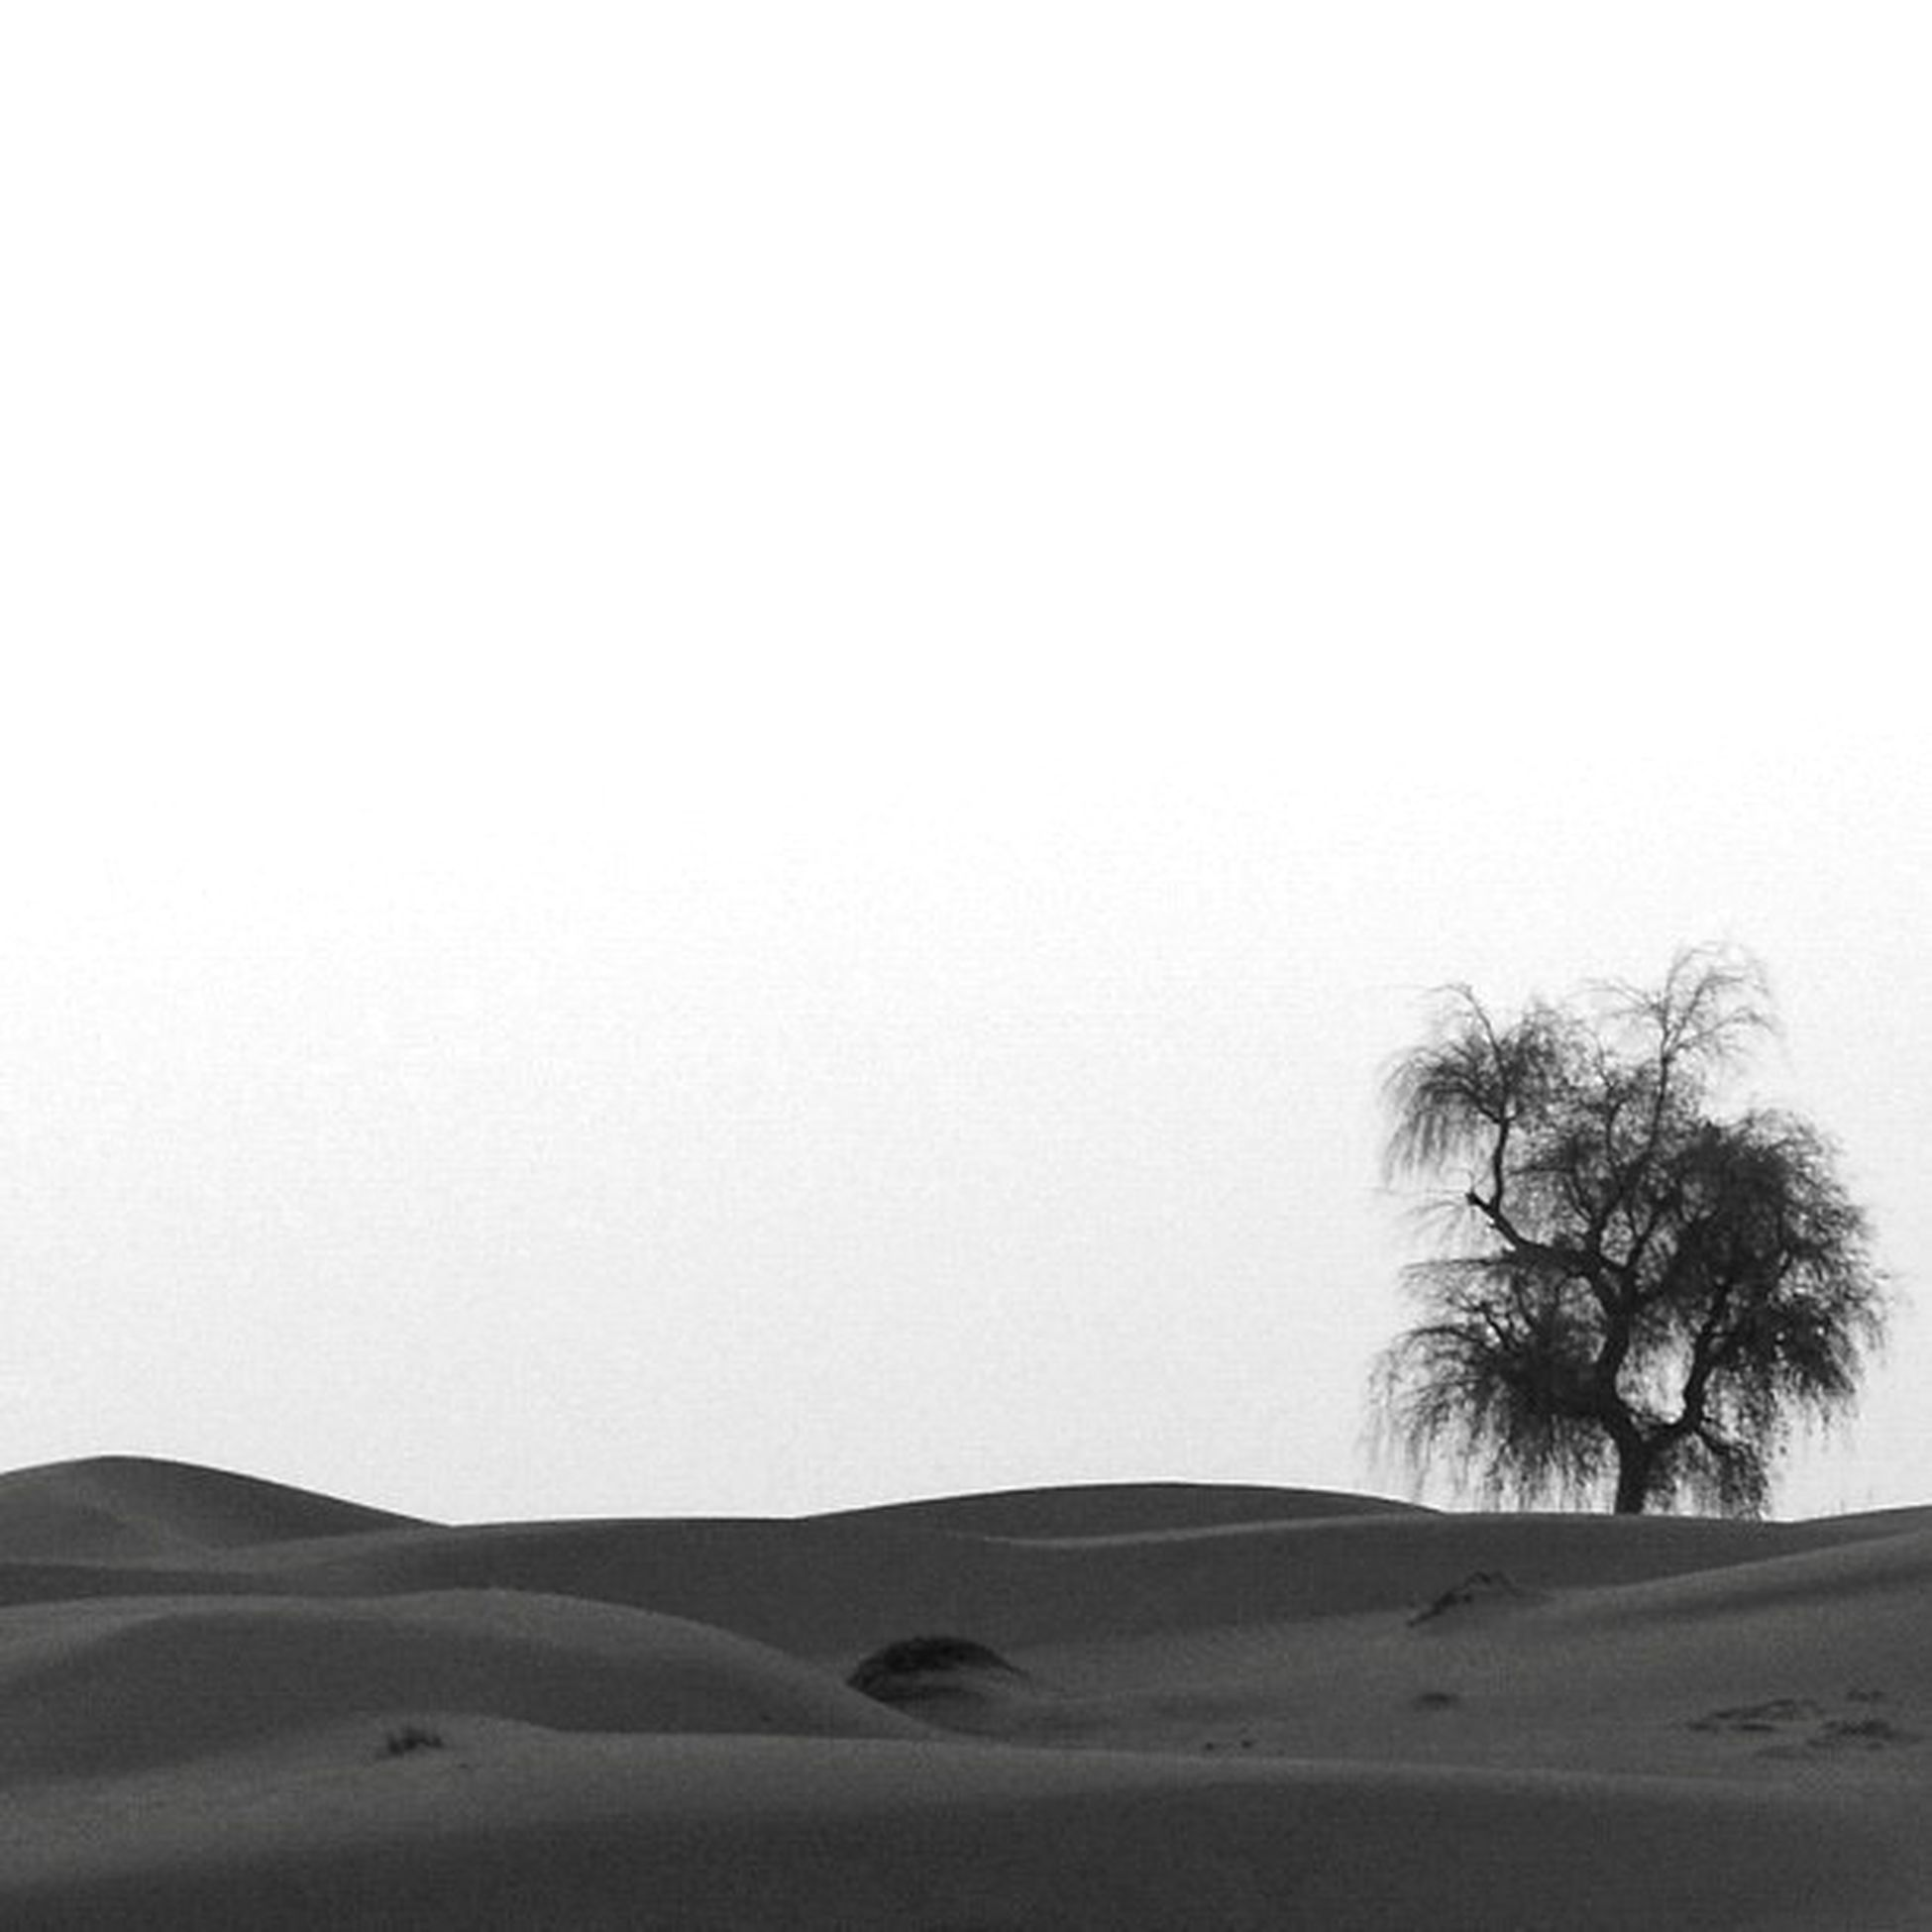 copy space, clear sky, desert, sand dune, studio shot, white background, arid climate, white, sand, single object, paper, moon, high section, dark, arid climate, remote, tranquility, tranquil scene, distant